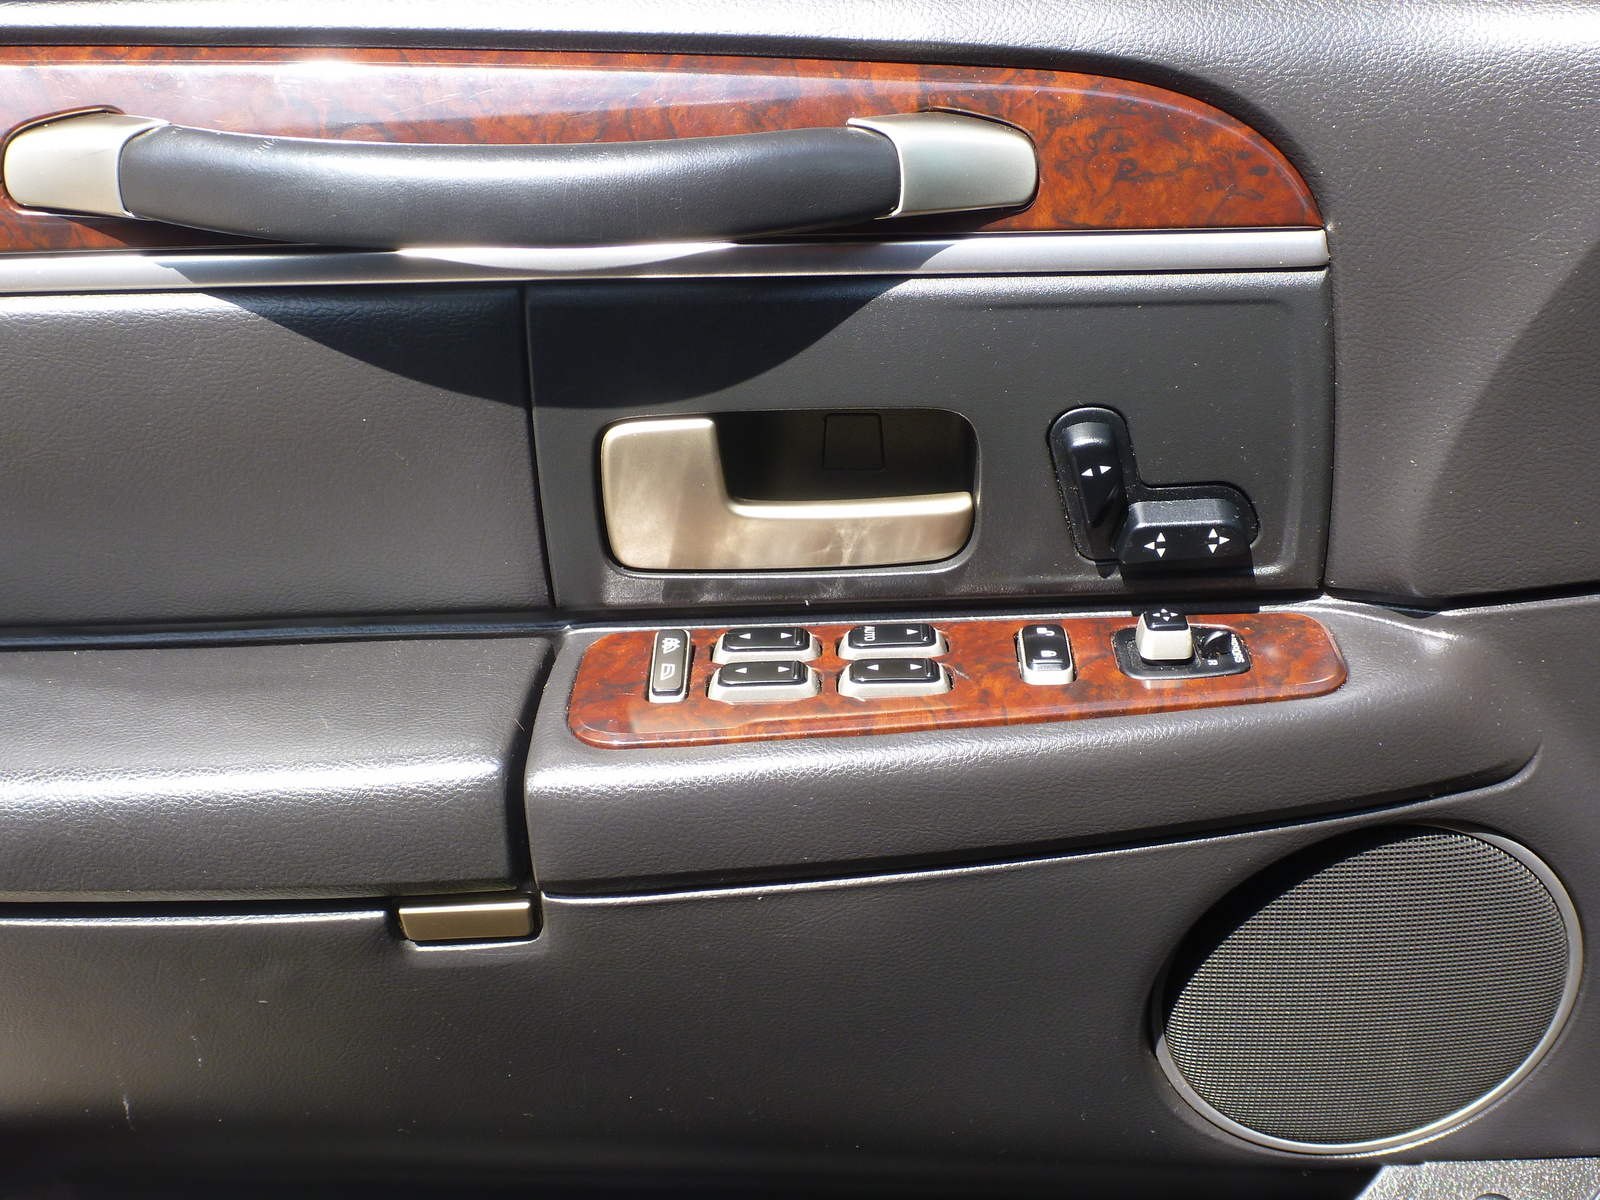 2006 Lincoln Town Car - Interior Pictures